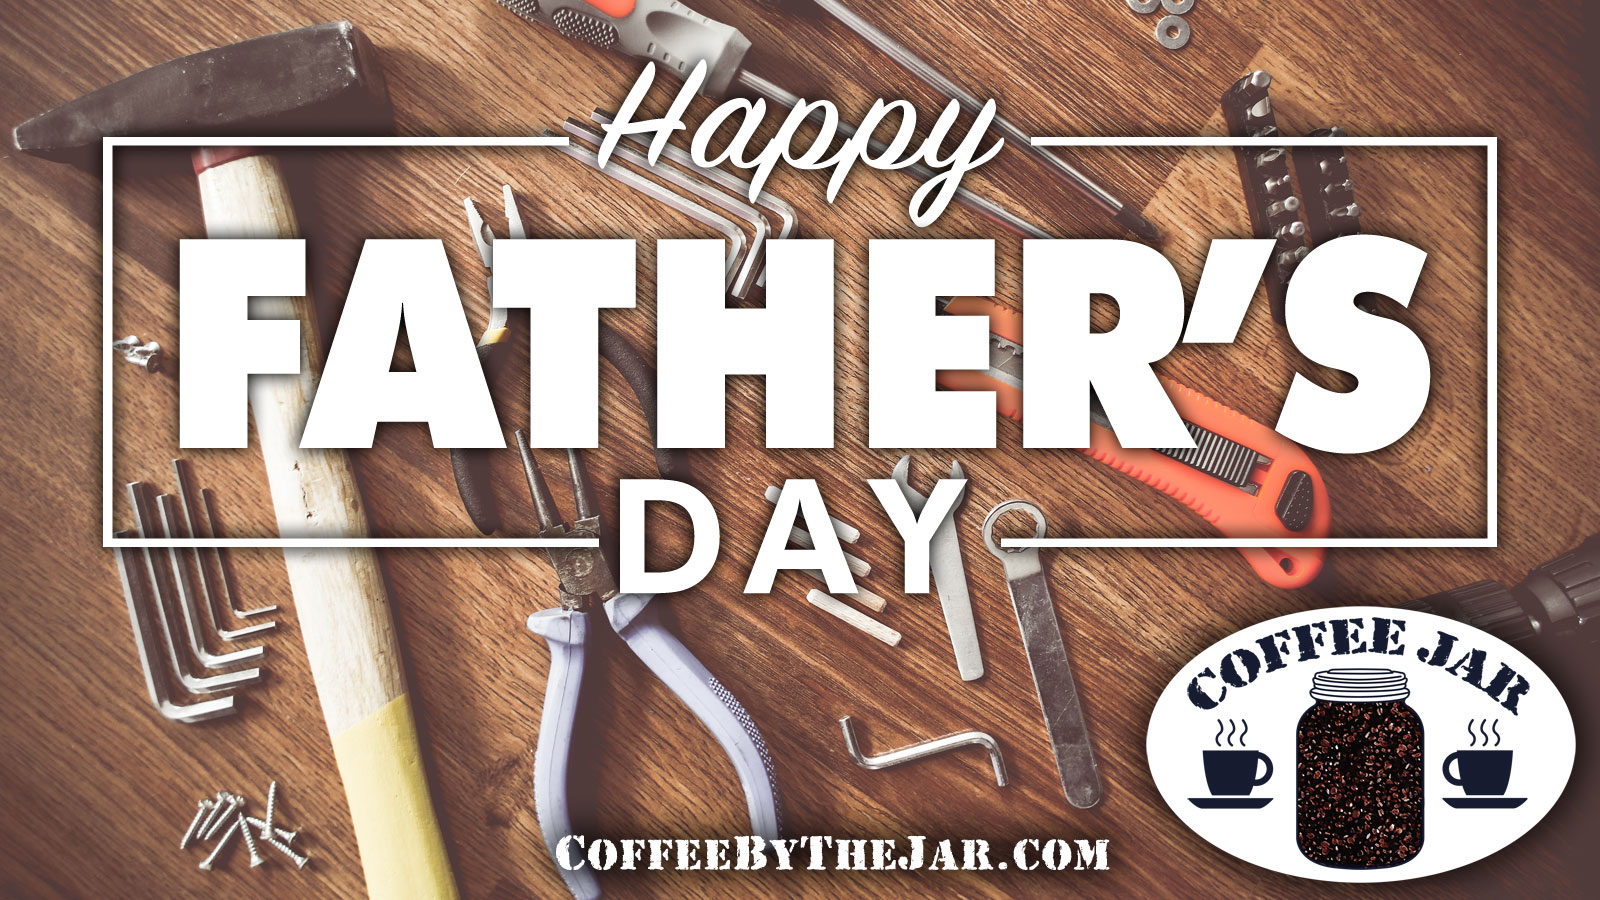 Coffee-Jar-Fathers-Day-wallpaper01-1600x900